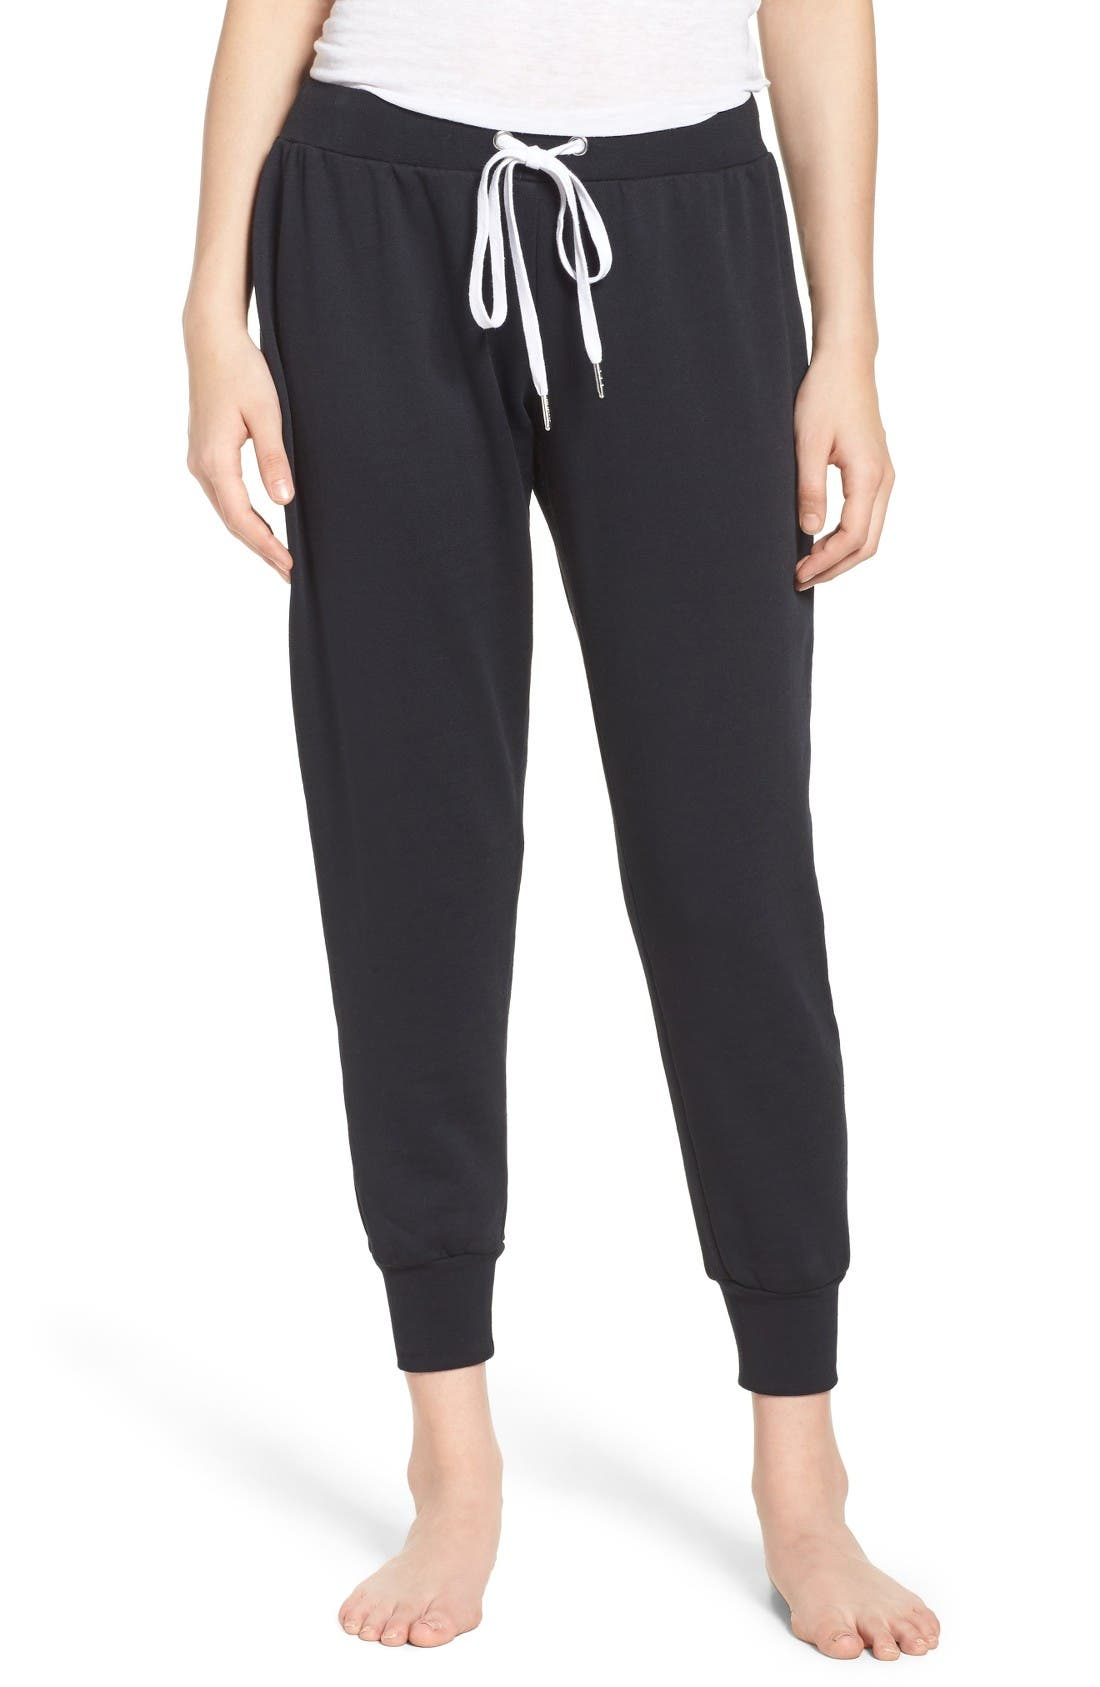 The Laundry Room Cozy Crew Lounge Pants